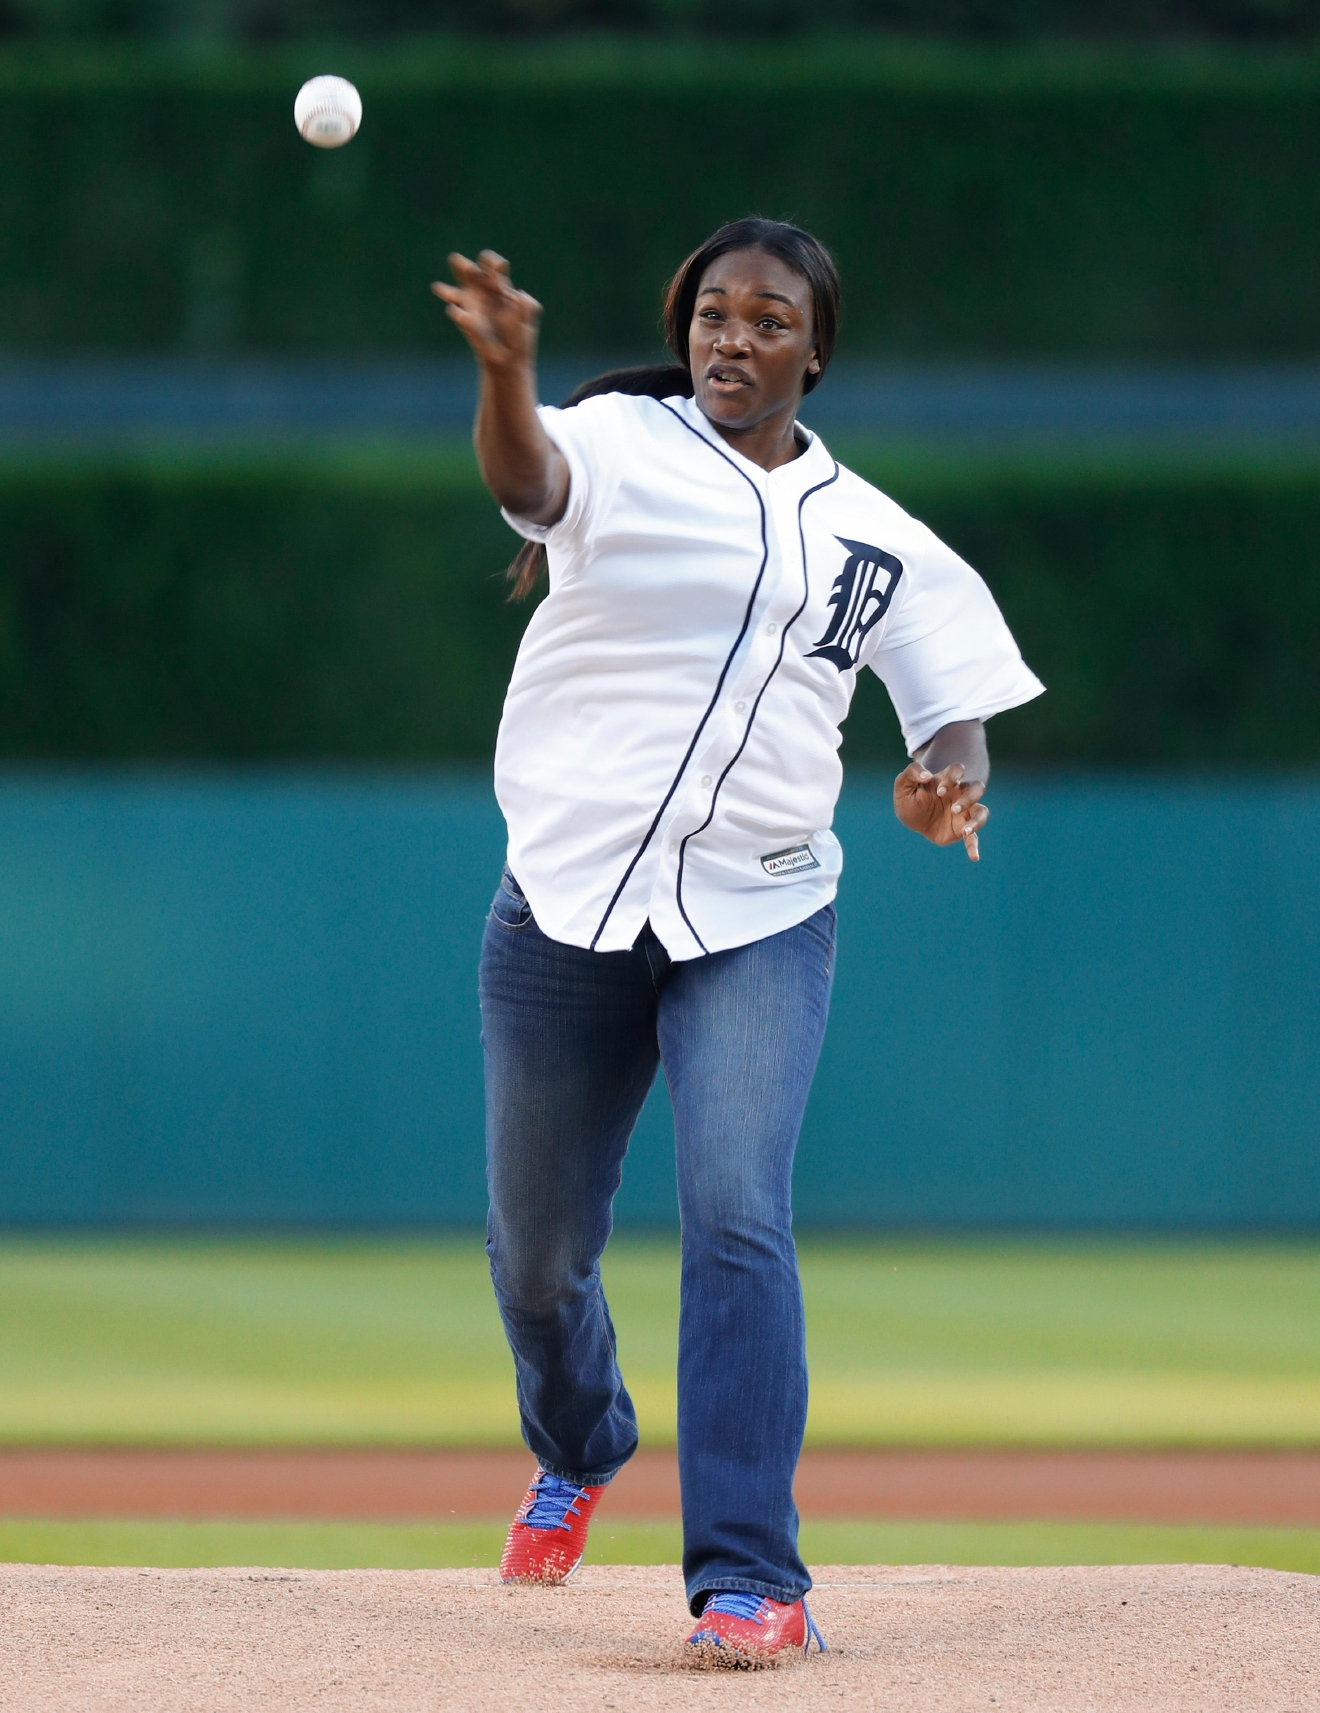 Olympic gold medalist boxer Claressa Shields throws a ceremonial pitch before a baseball game between the Detroit Tigers and Minnesota Twins in Detroit, Monday, Sept. 12, 2016. (AP Photo/Paul Sancya)